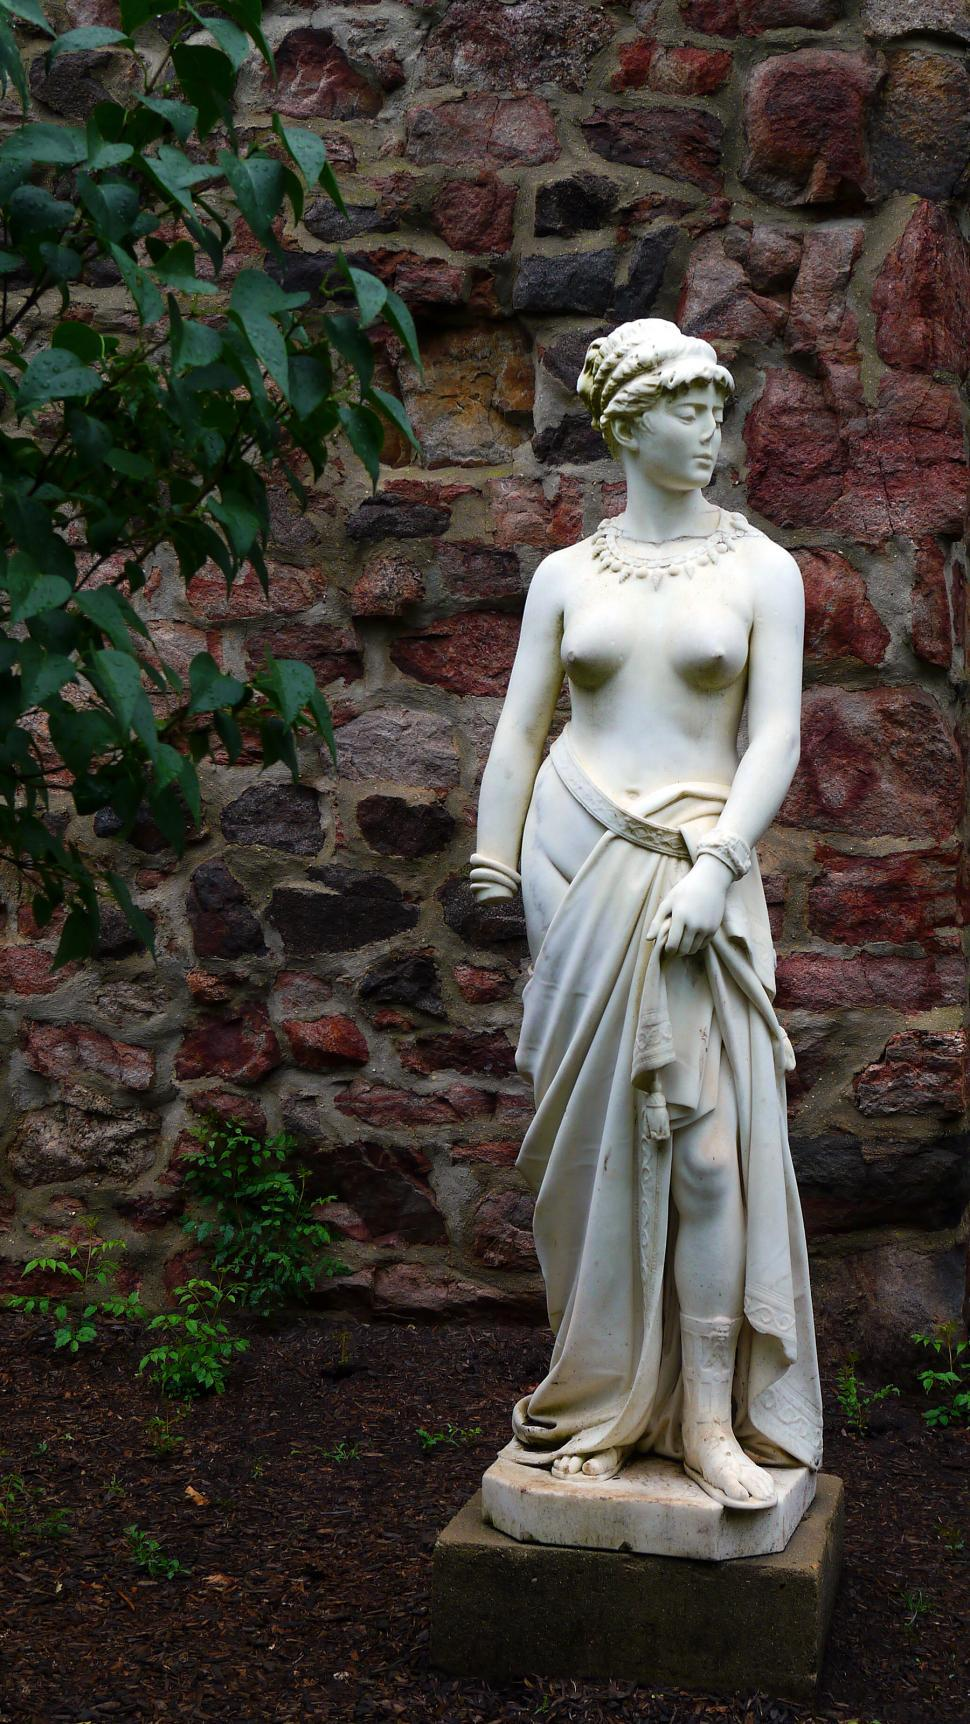 Download Free Stock Photo of Garden Carved Stature